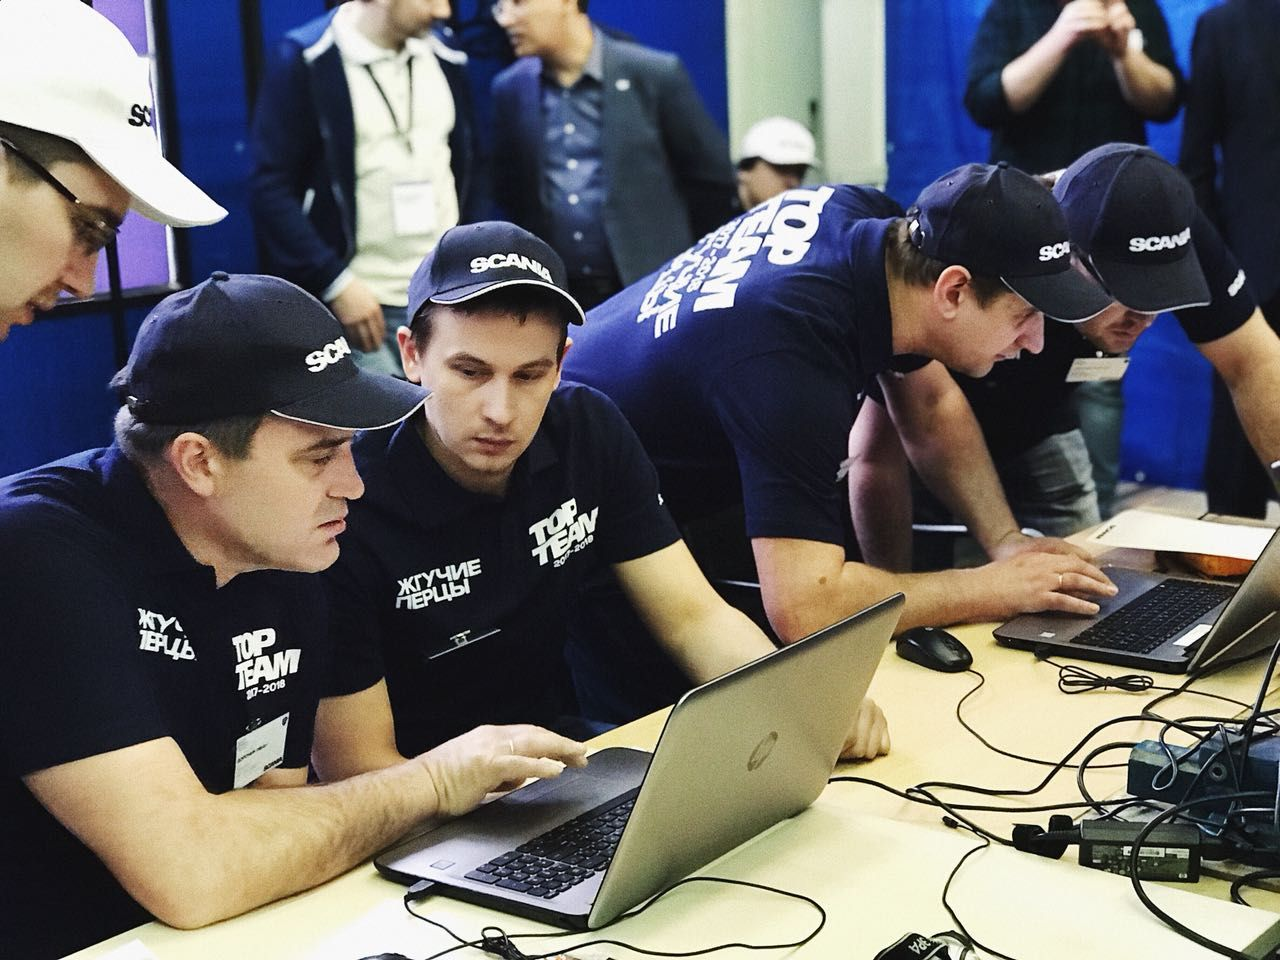 Финал Scania Top Team